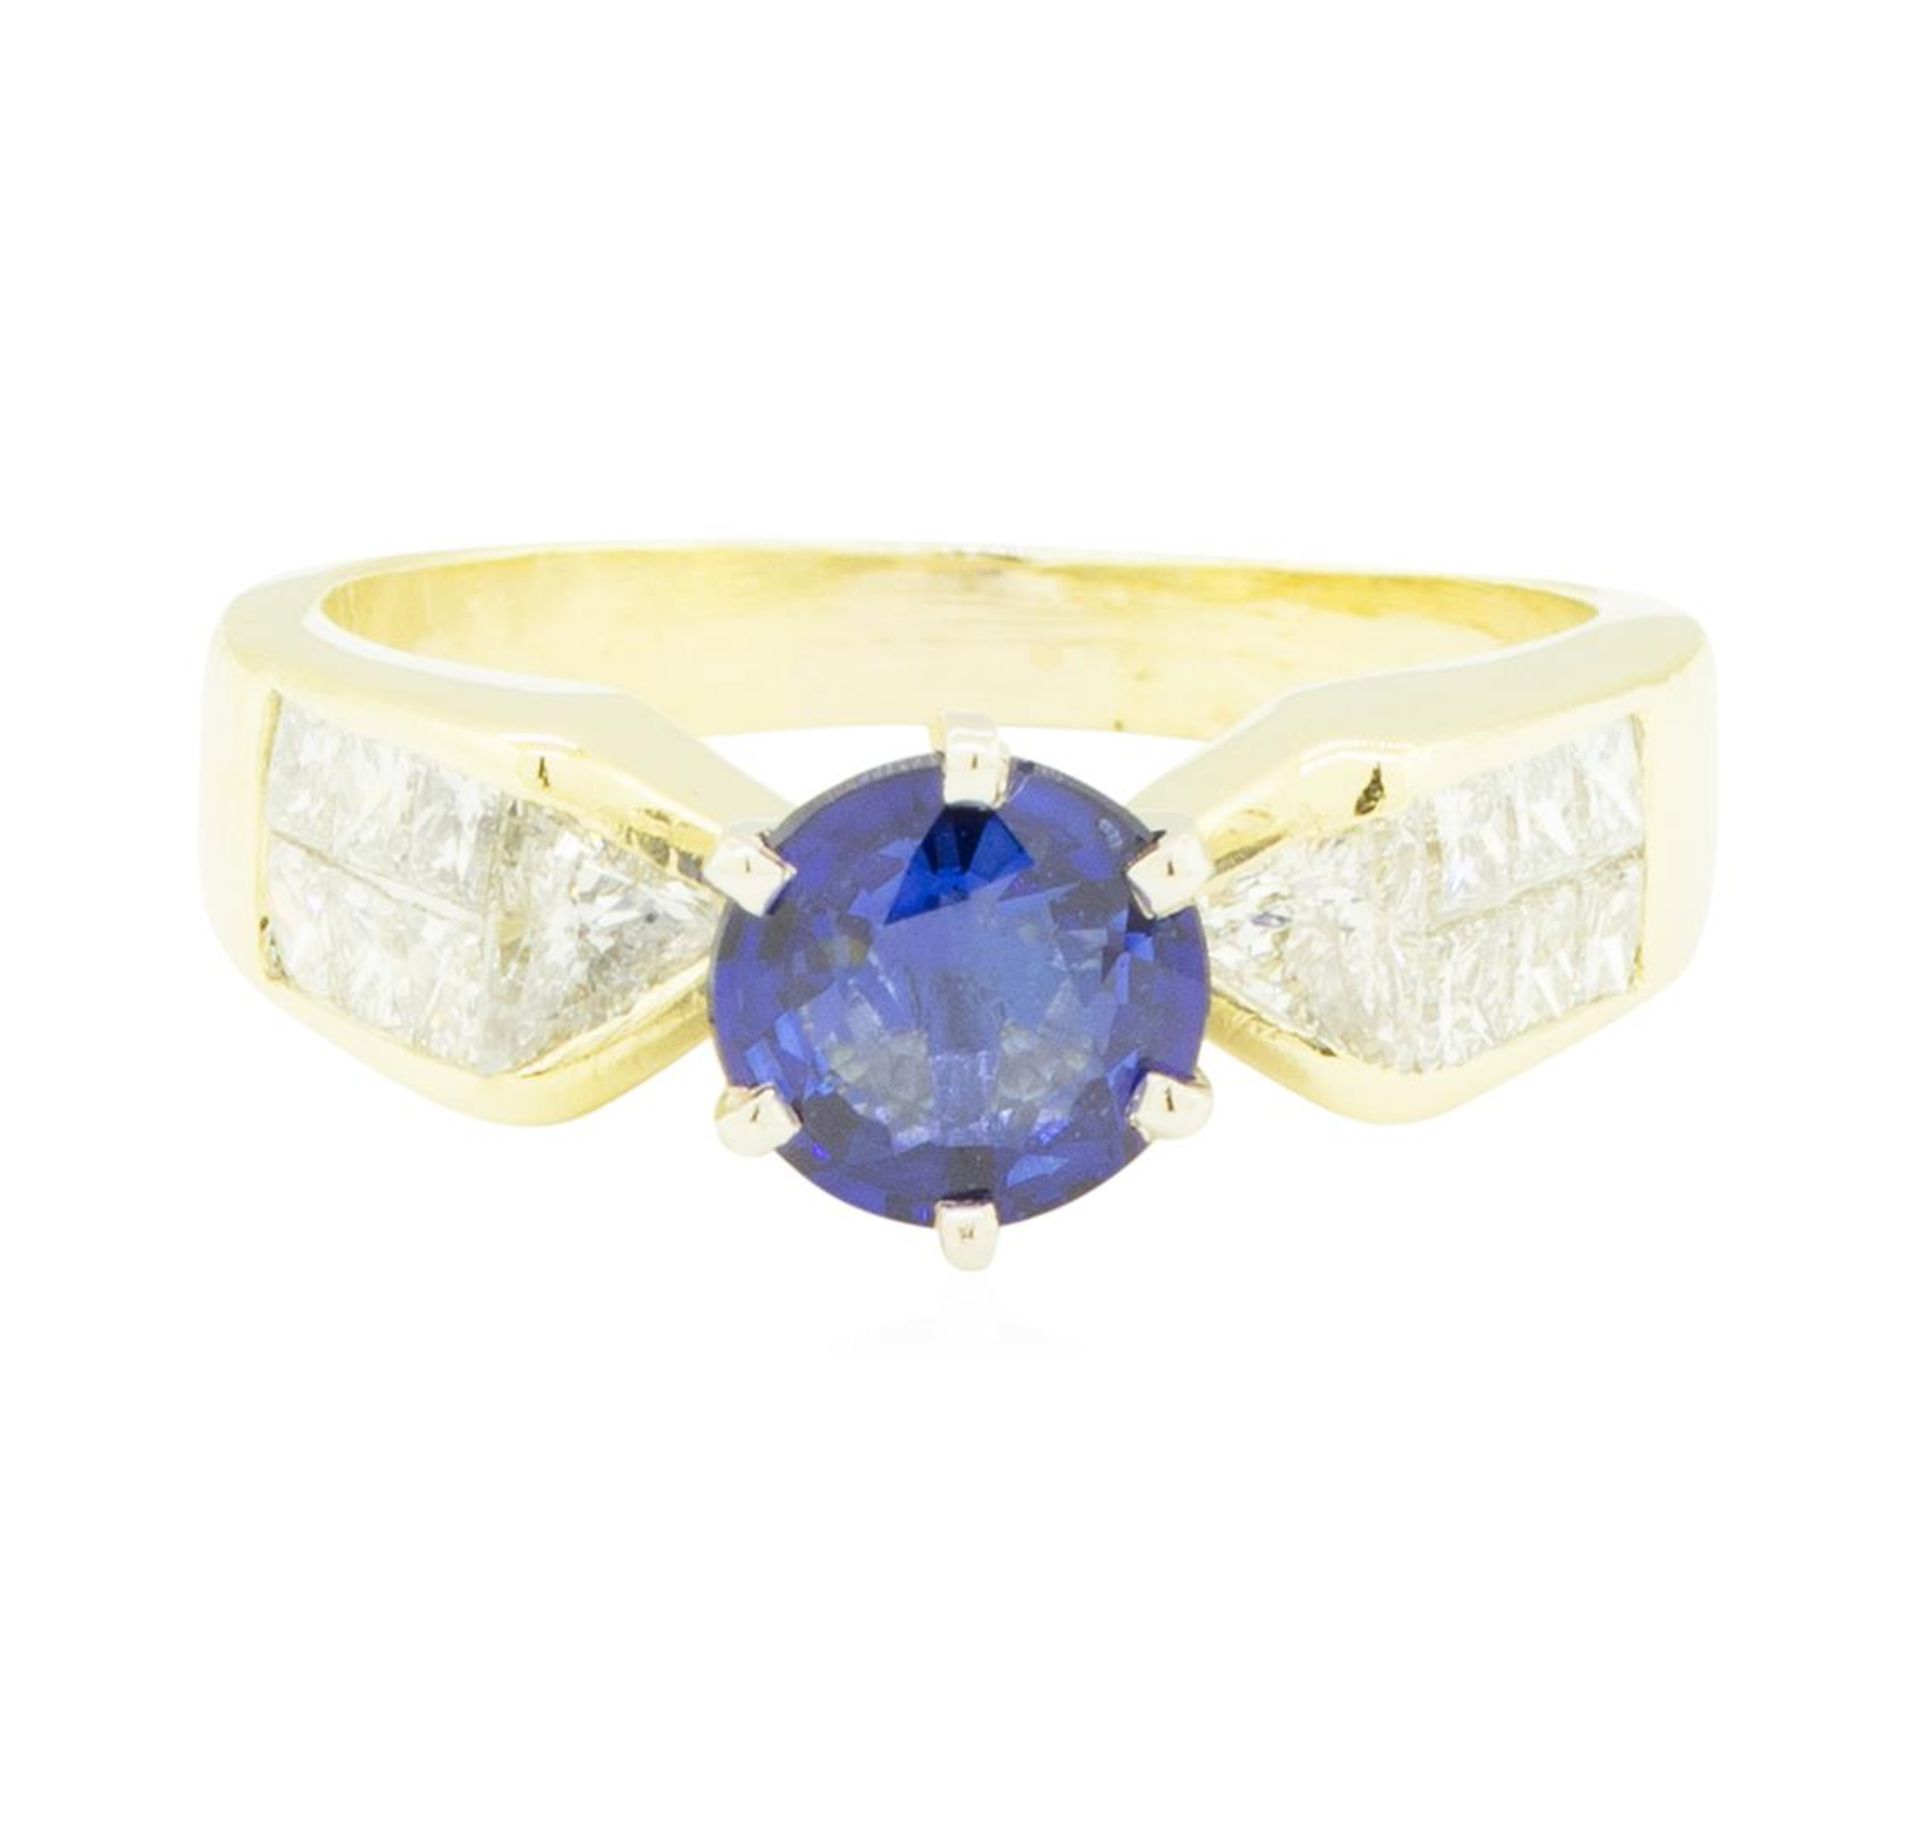 2.20 ctw Blue Sapphire and Diamond Ring - 18KT Yellow Gold - Image 2 of 4